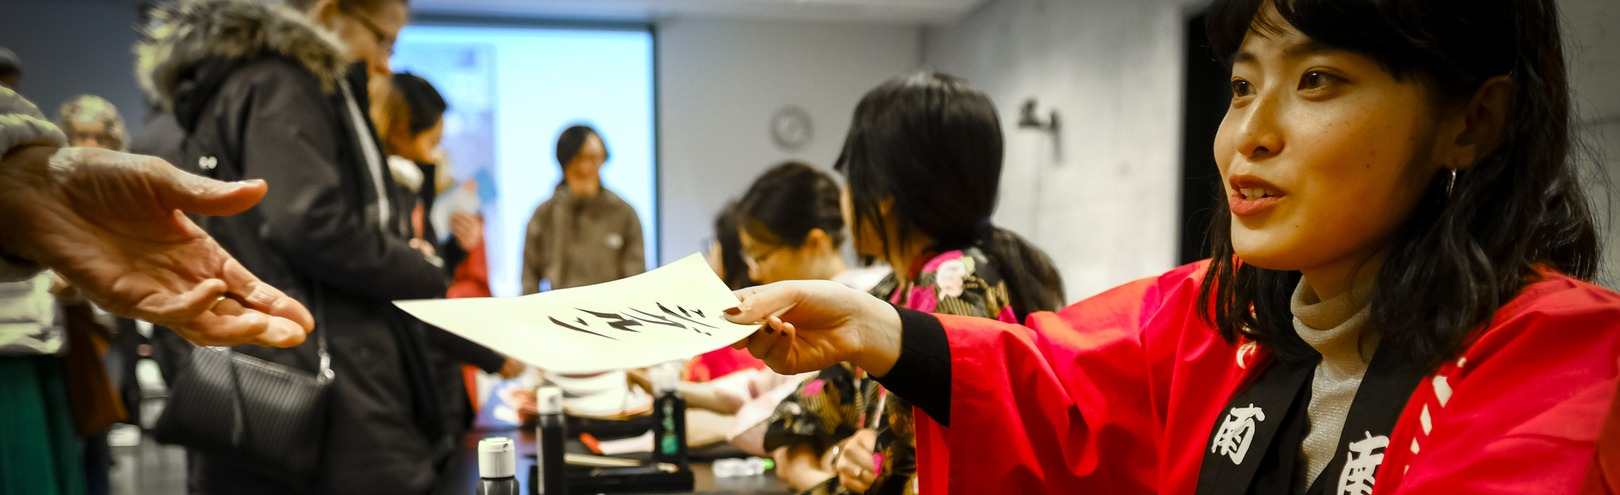 Japan Festival for a whole week online - Available at University of Iceland